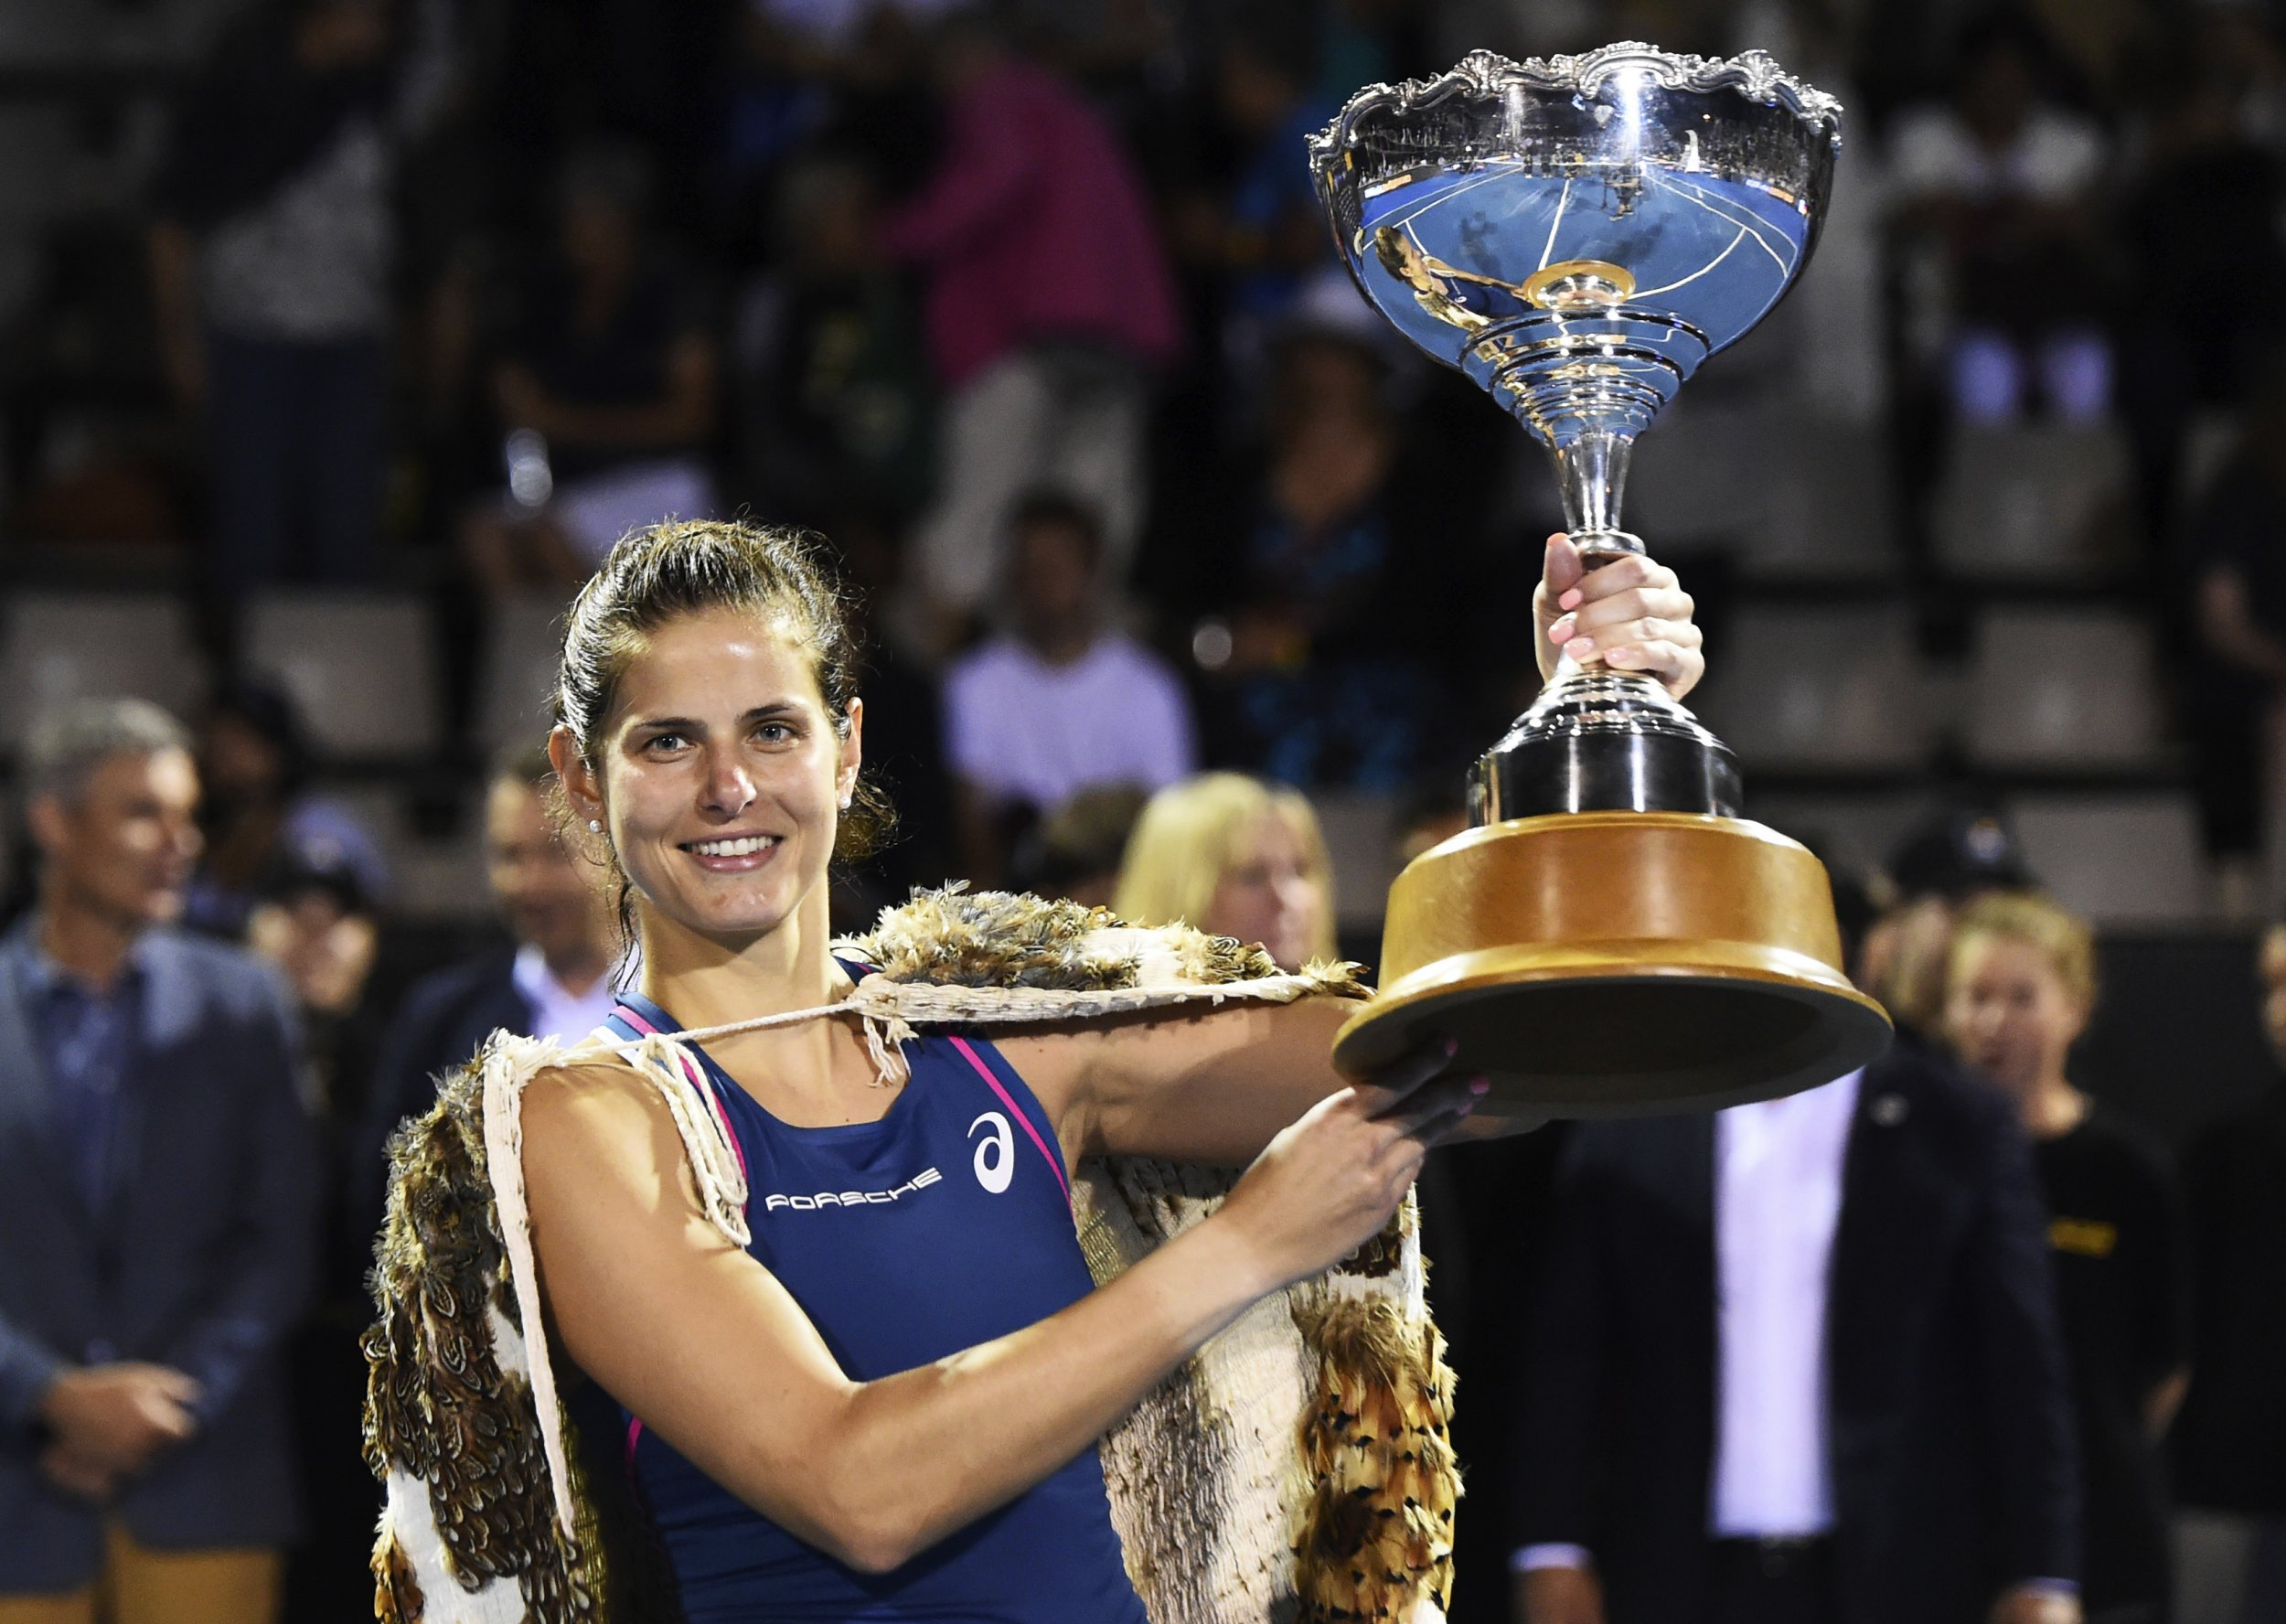 Germany's Julia Goerges holds the trophy after winning the singles final of the ASB Classic tennis tournament in Auckland, New Zealand, Sunday, Jan. 6, 2019. (AP Photo/Chris Symes)